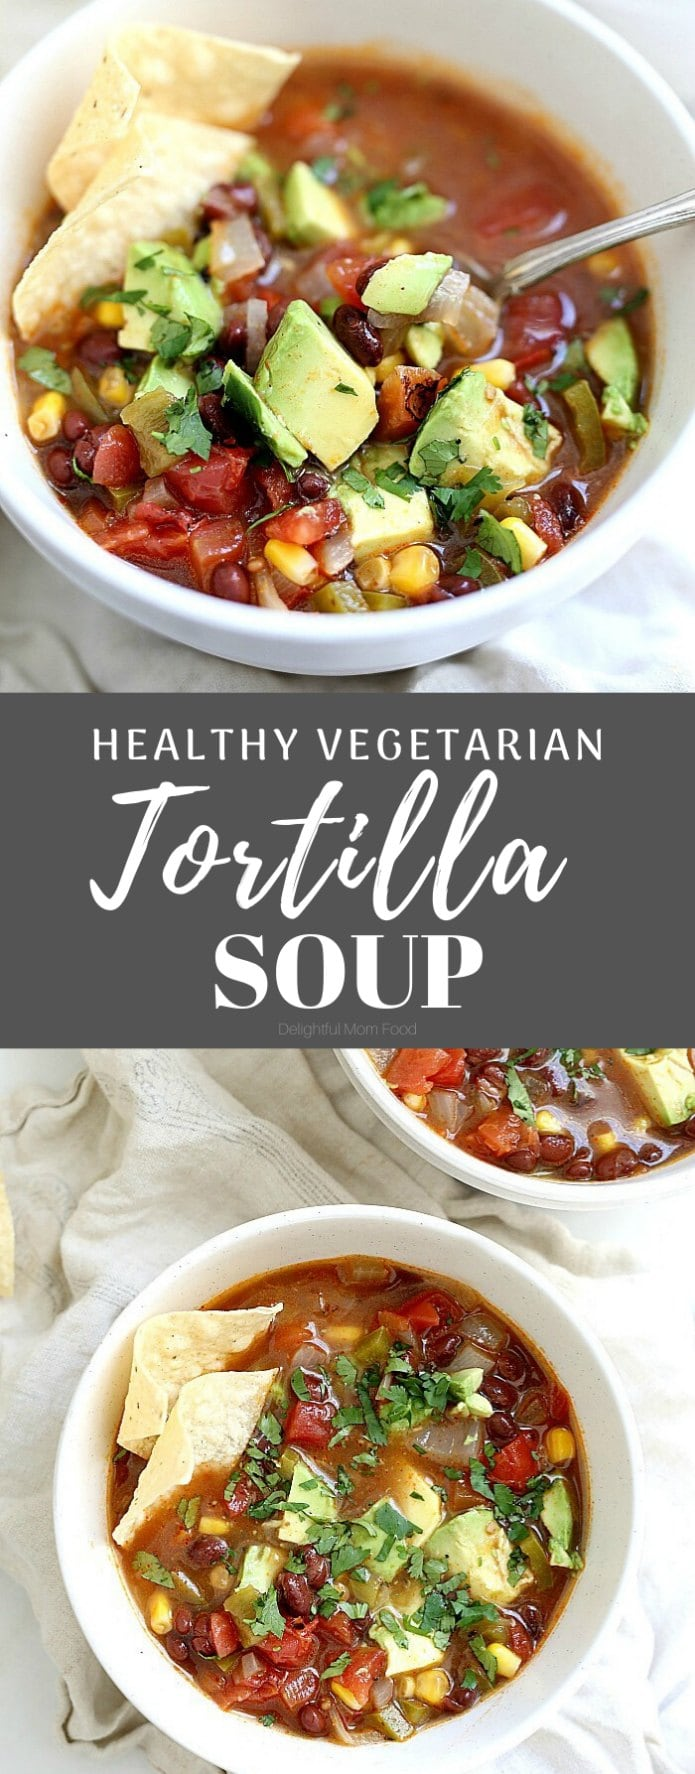 Healthy vegetarian tortilla soup full of savory Mexican vegetables. Chiles, sweet corn + spices add loads of flavor in this easy bean filled tortilla soup. Plus it is a healthy family meal ready in about 30 minutes! #vegetariantortillasoup #tortillasouprecipe #healthy #recipe #tortillasoup #glutenfree #dinner #soup #easytortillasoup | Recipe at Delightful Mom Food